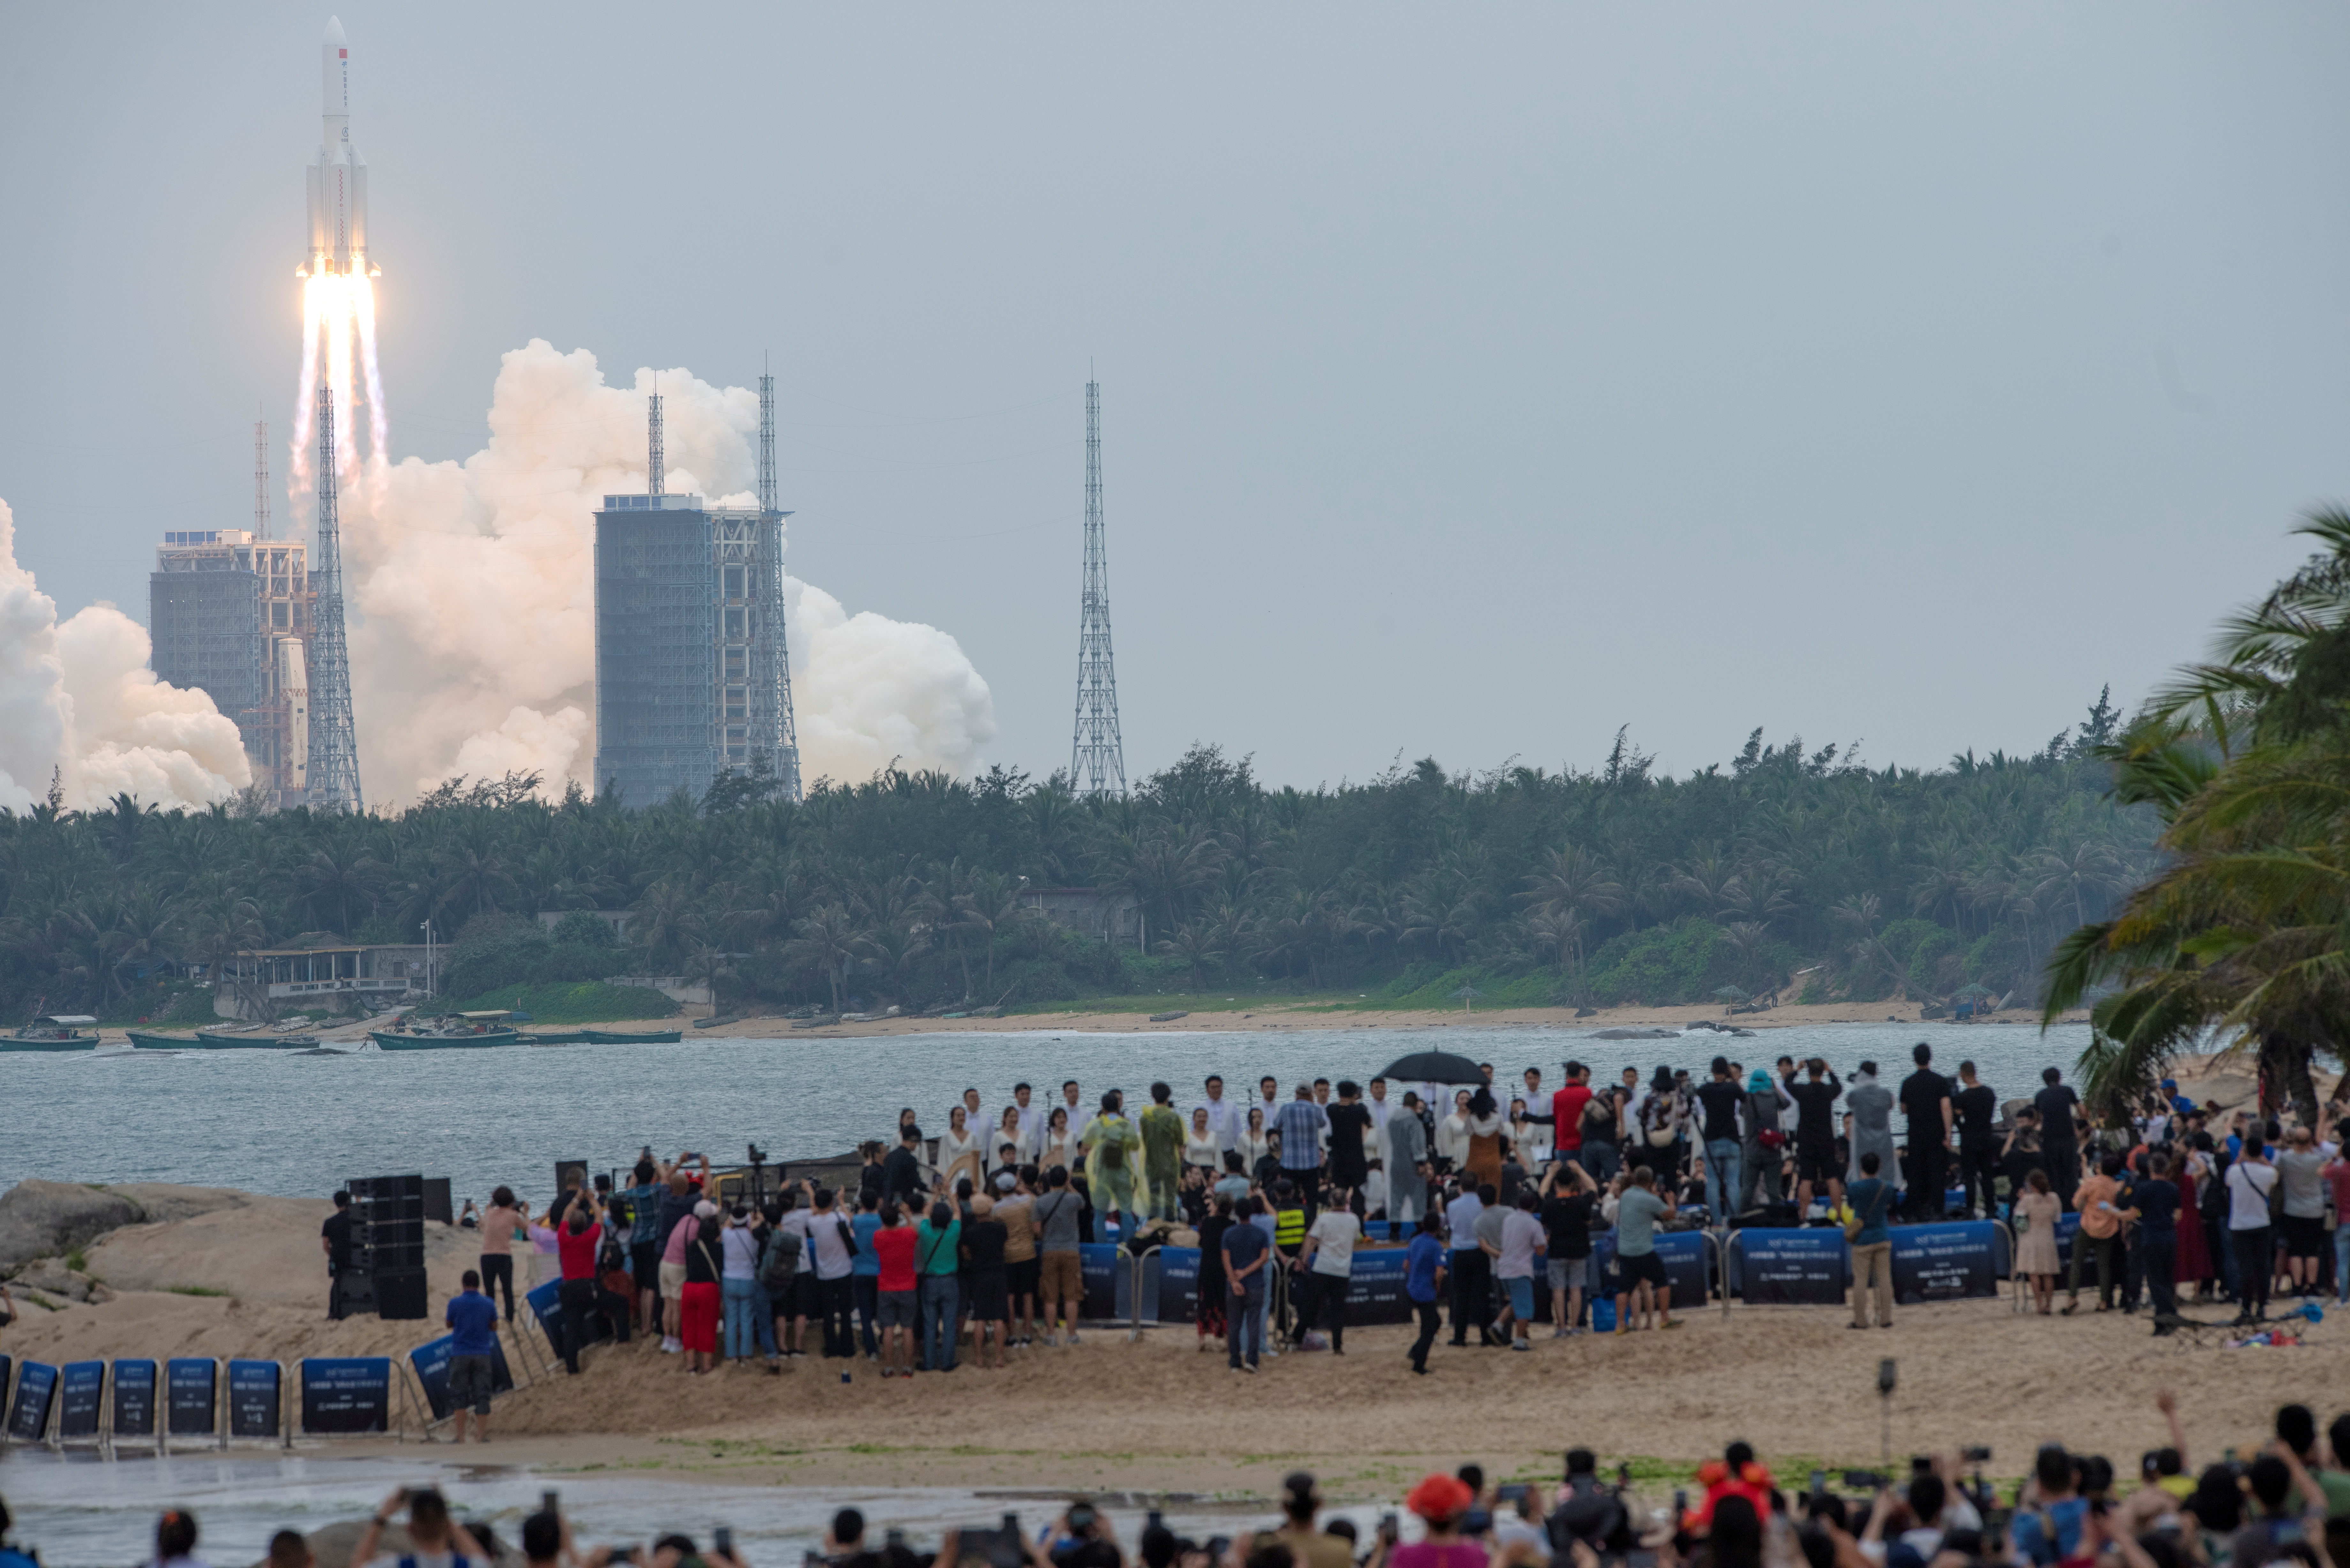 People watch from a beach as the Long March-5B Y2 rocket, carrying the core module of China's space station Tianhe, takes off from Wenchang Space Launch Center in Hainan province, China April 29, 2021. China Daily via REUTERS